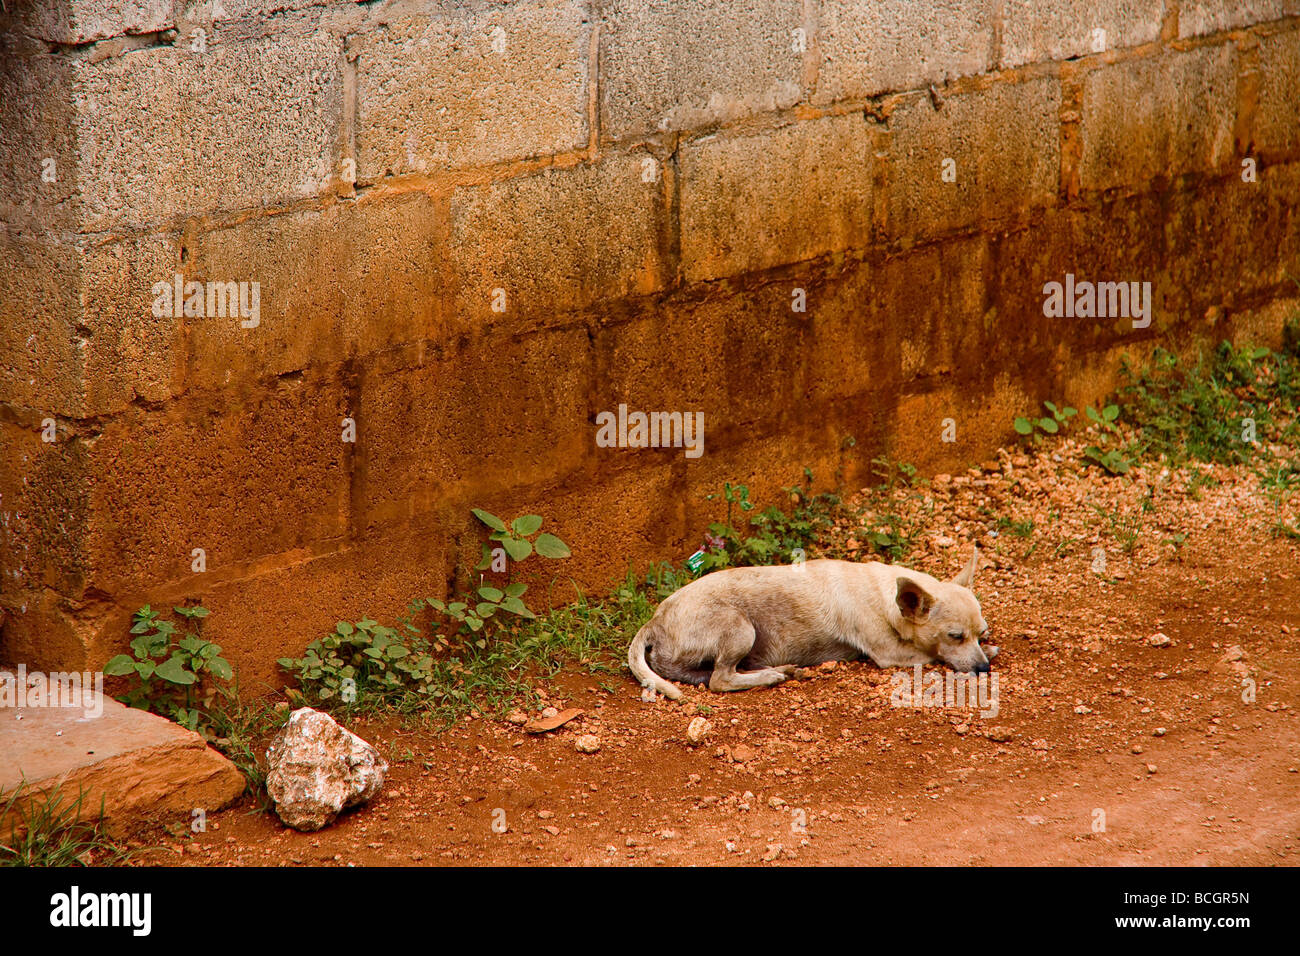 A dog sleeps on the very mineral rich ground by a house in Nagua Dominican Republic - Stock Image